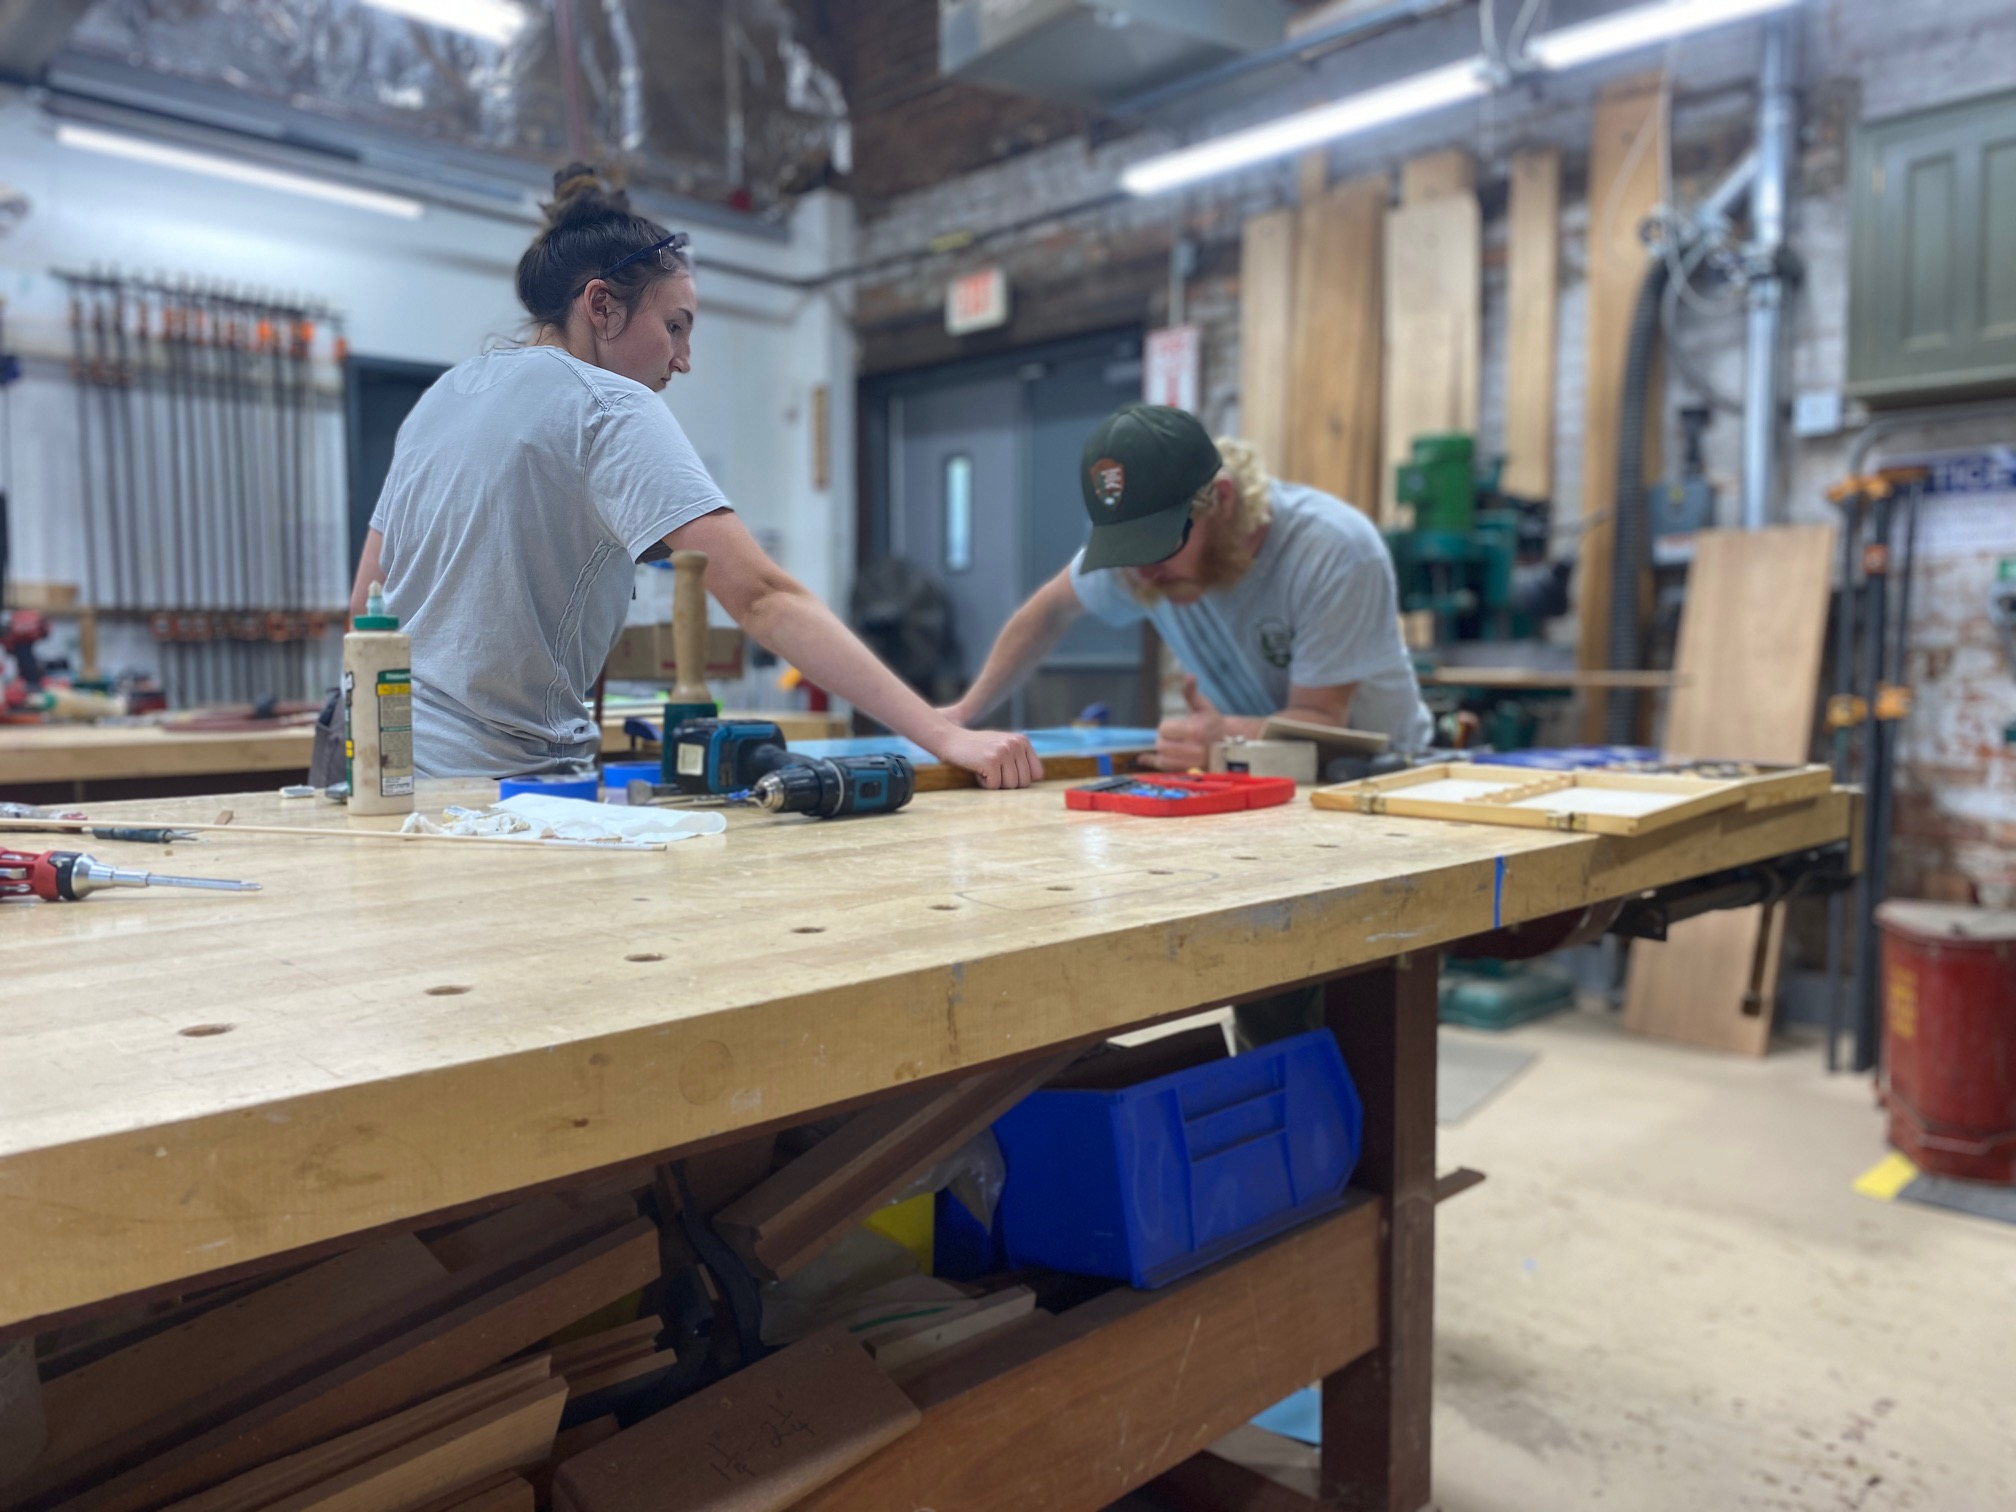 Trainees work on a historic window at the Historic Preservation Training Center in Frederick, Md.